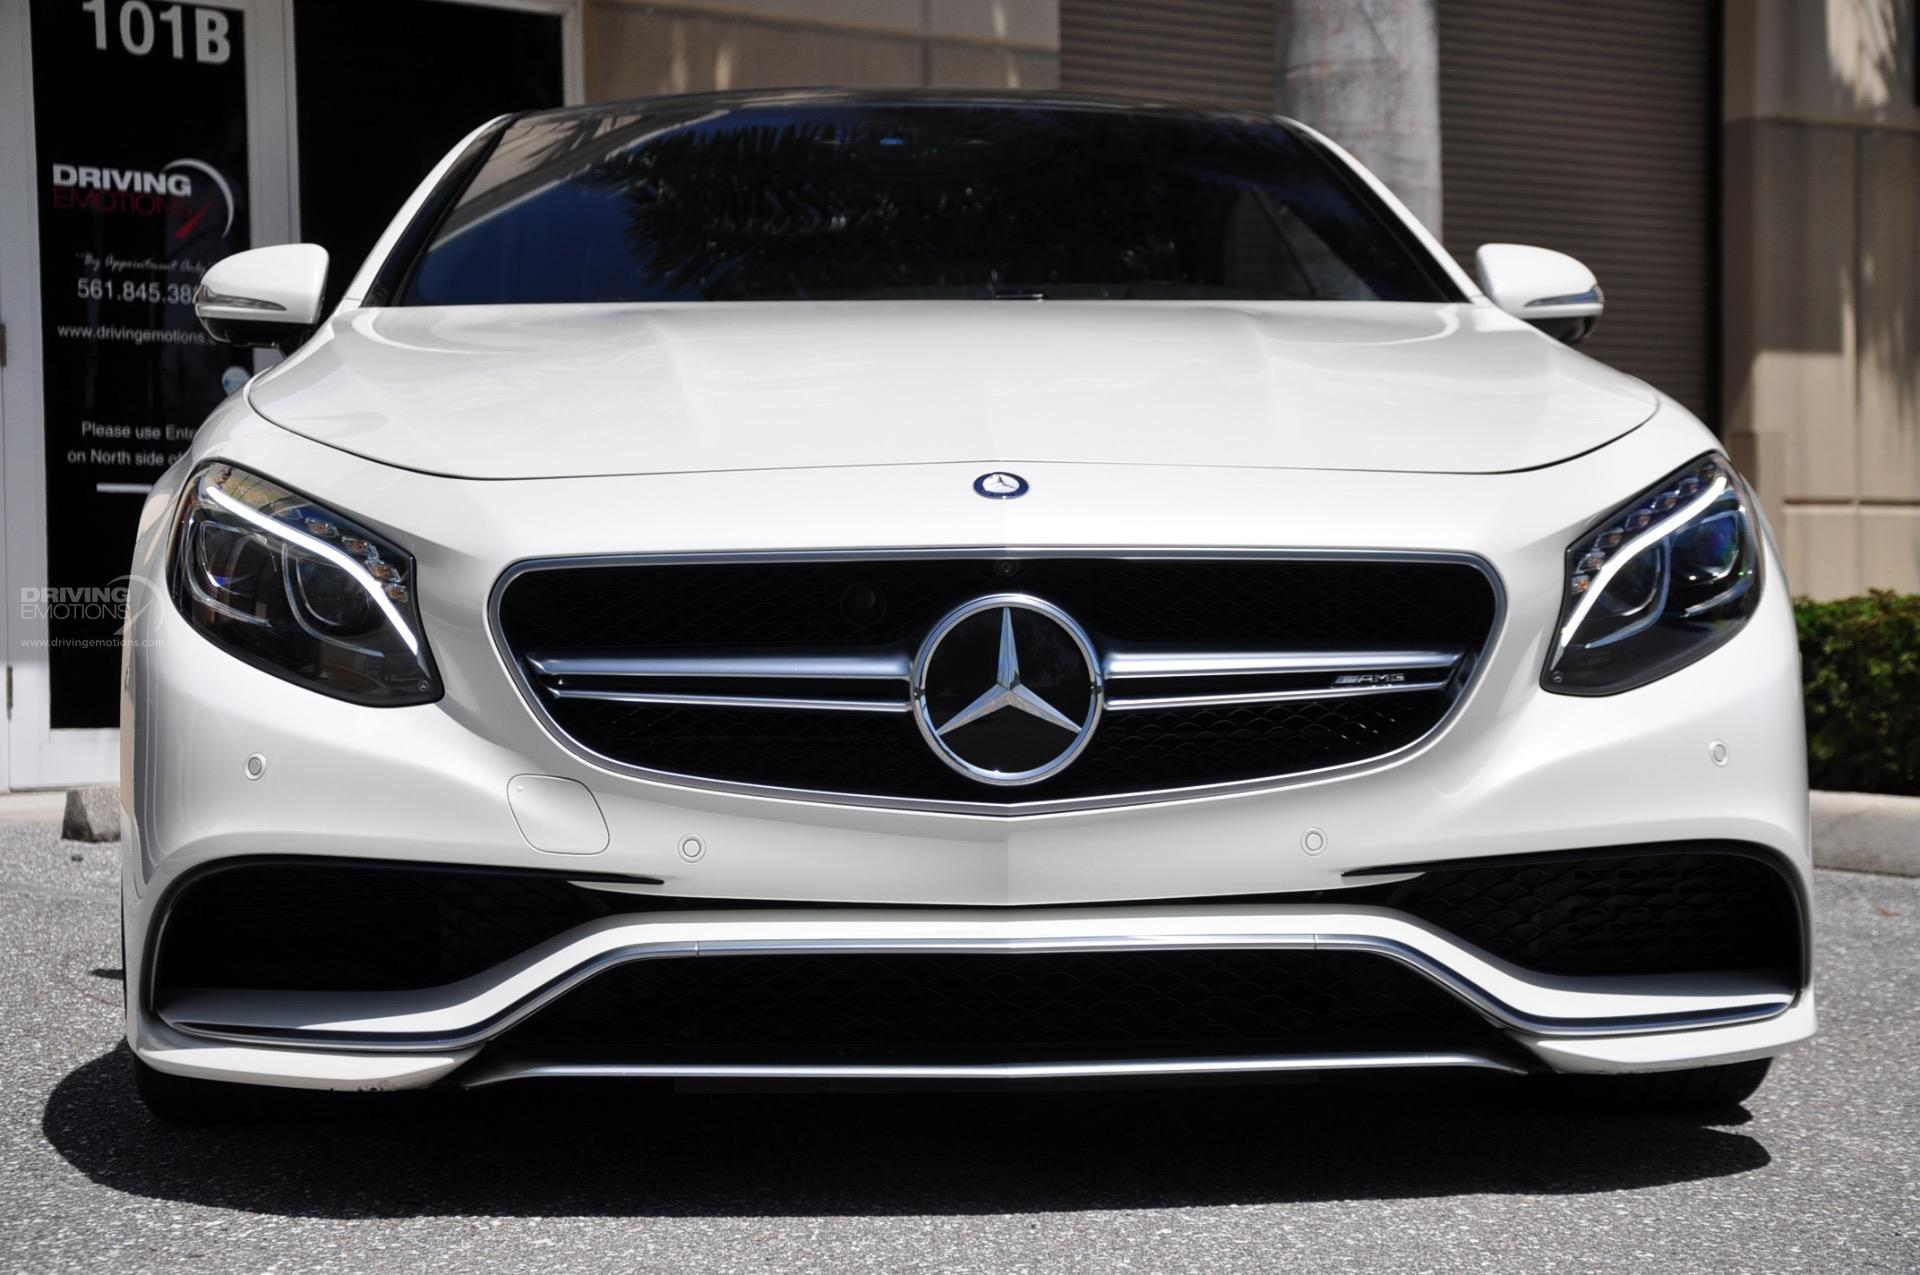 2015 mercedes benz s63 amg 4matic coupe s63 amg stock for 2015 mercedes benz s63 amg price